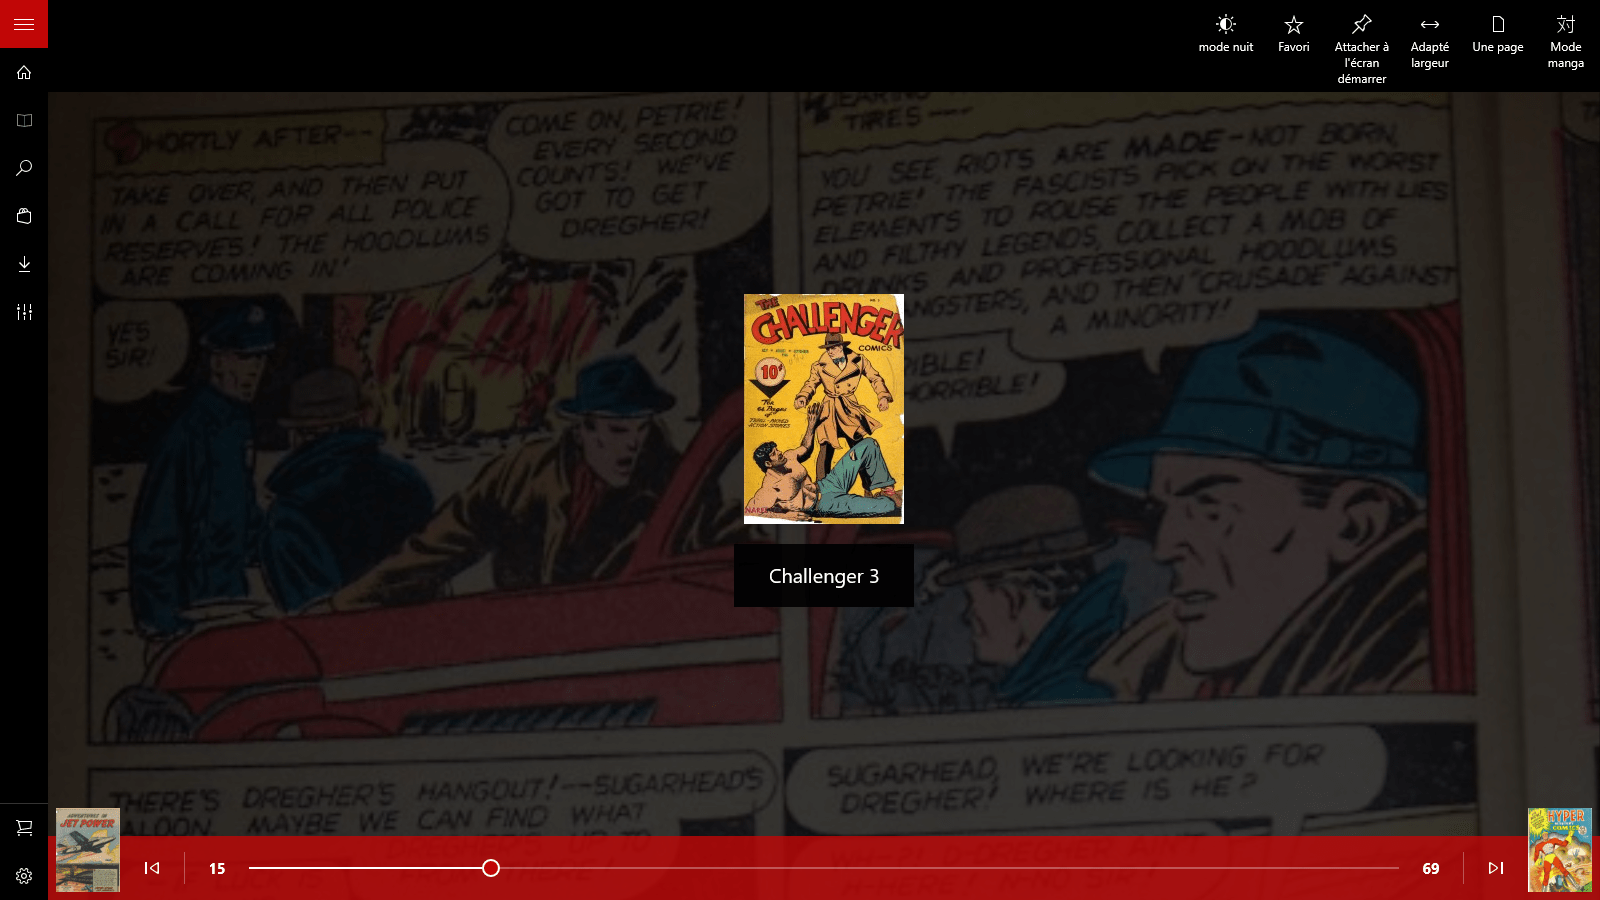 Cover Comic Reader is Now a Universal App for Windows 10 PC